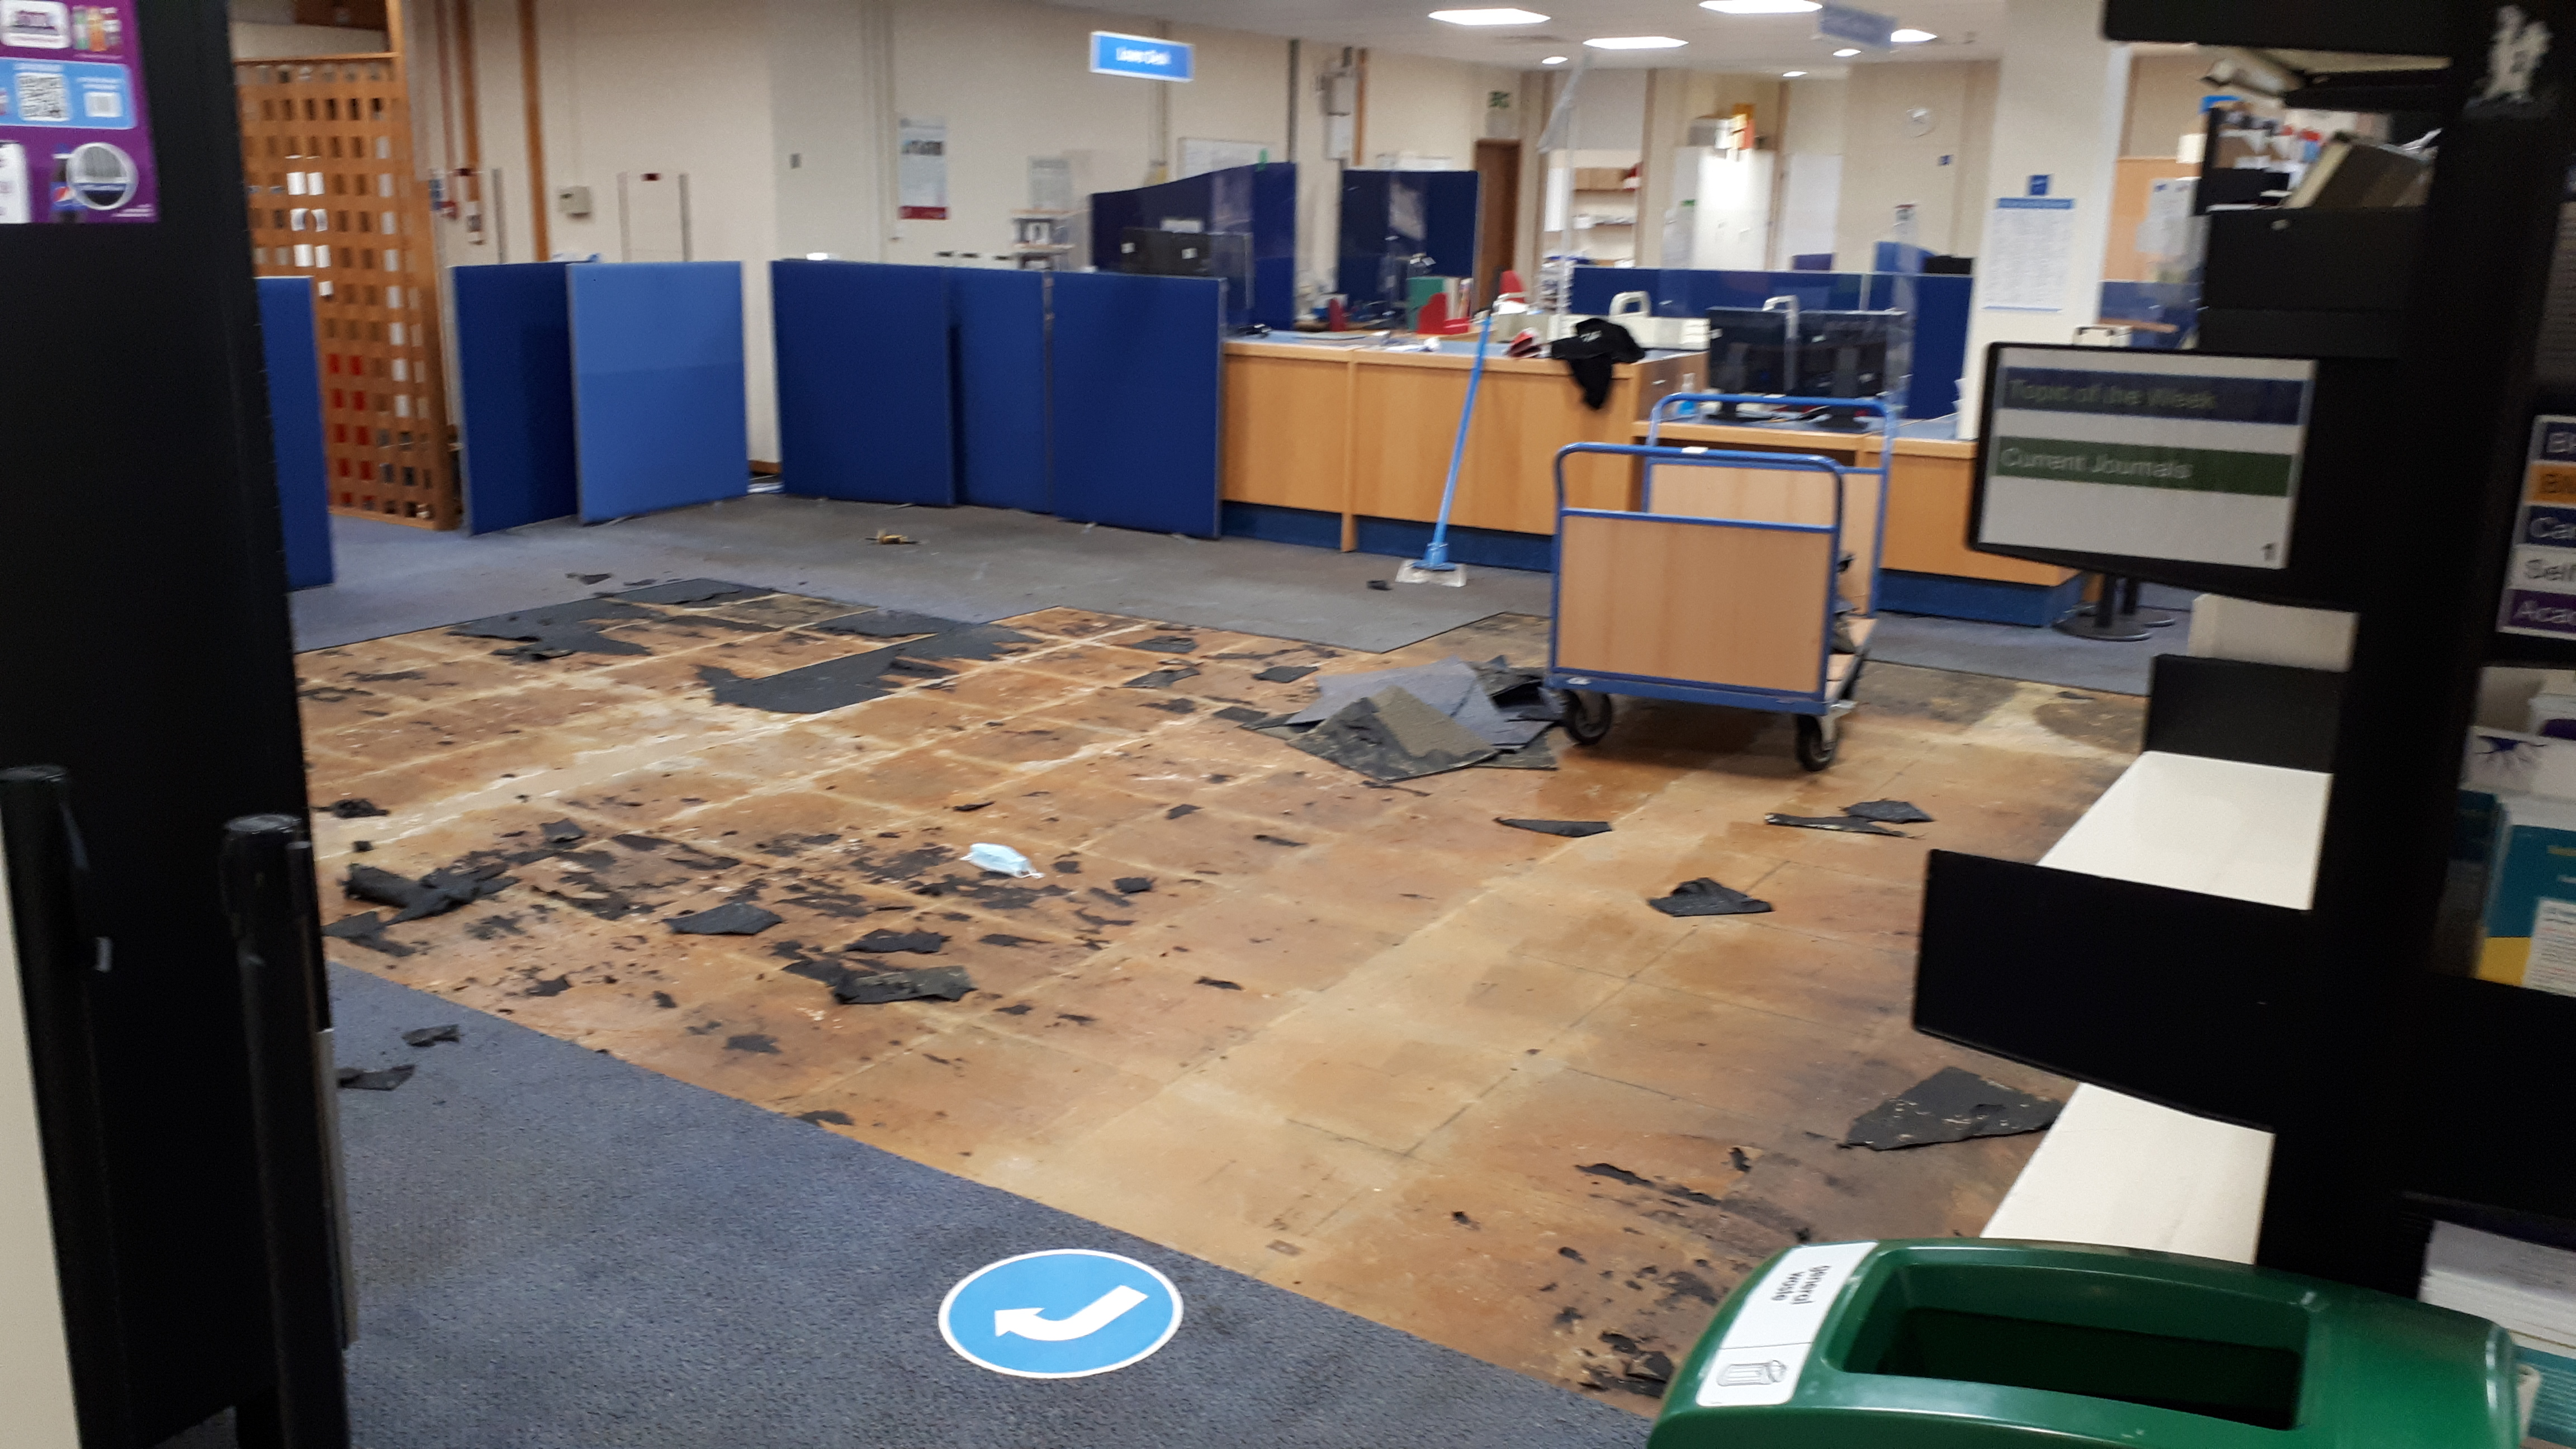 HSL with some of the damaged carpet tiles removed, showing the wet floor underneath